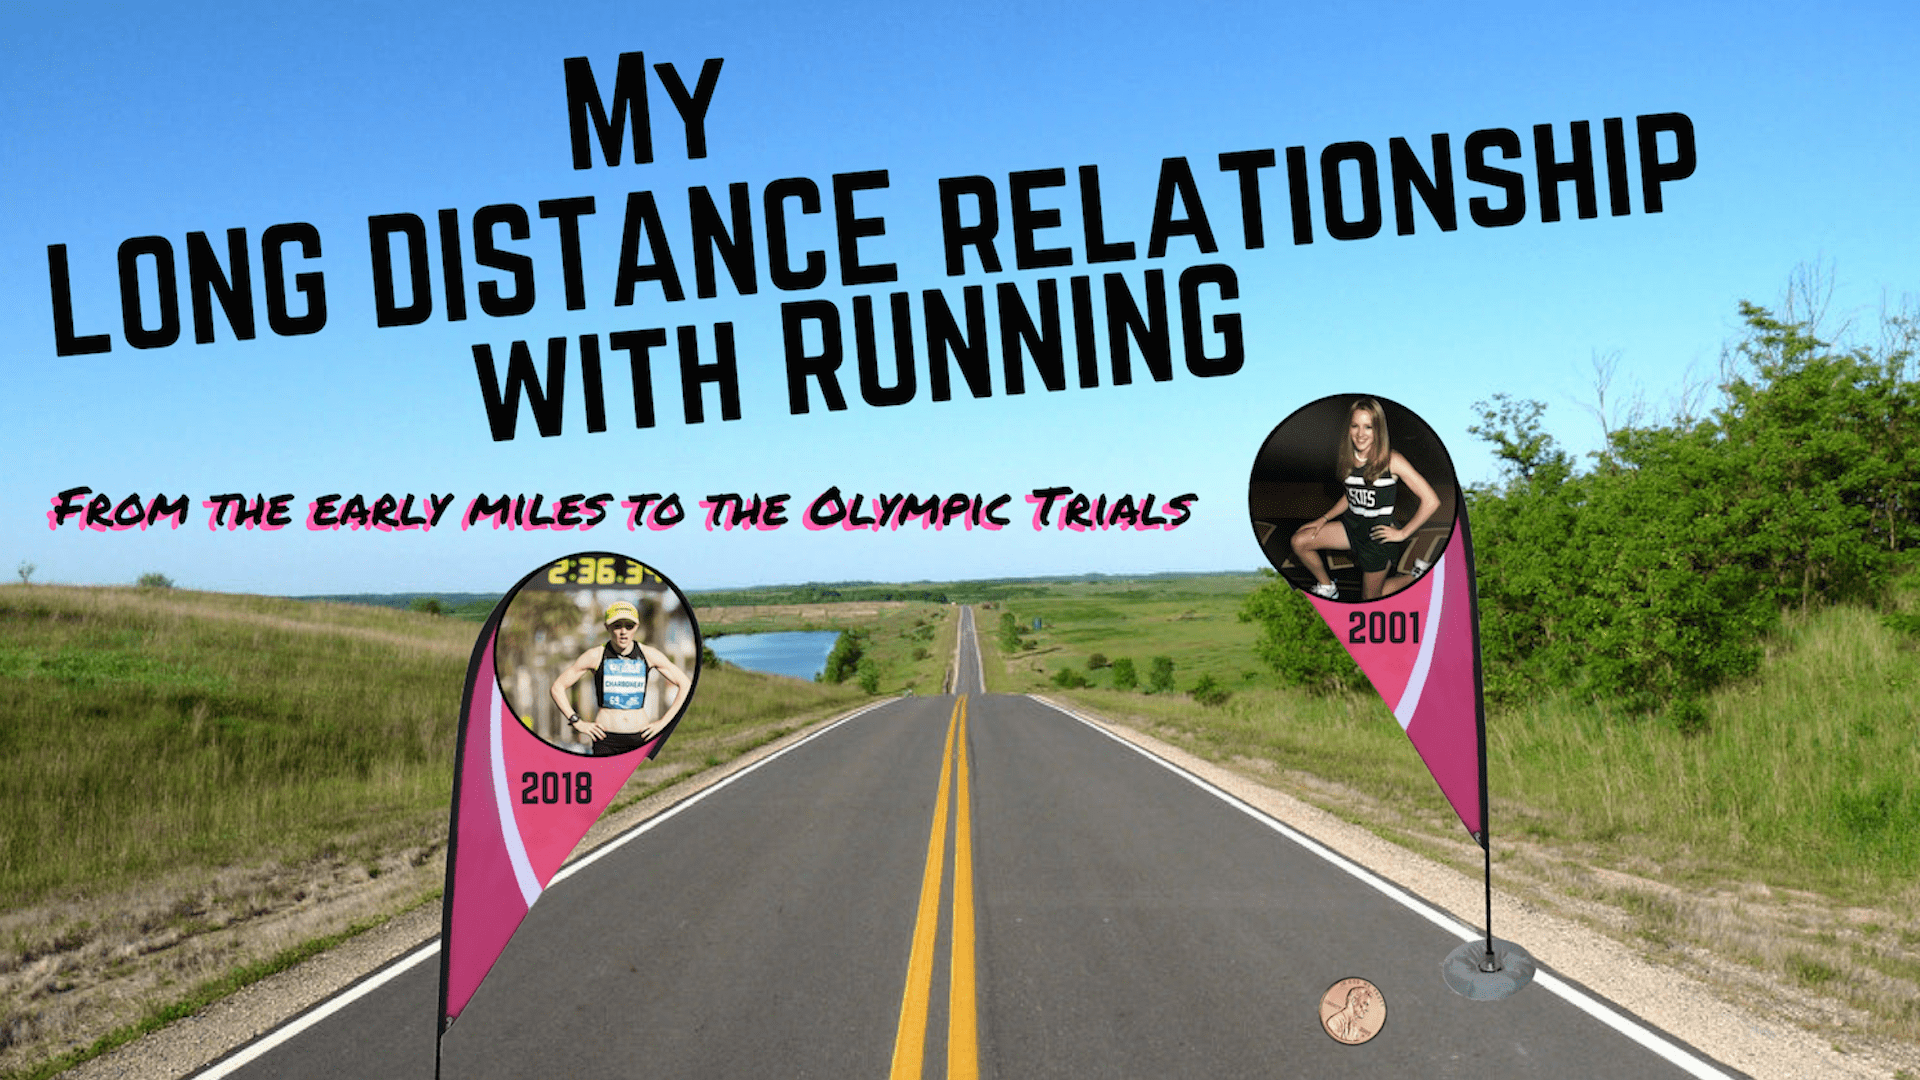 My Long Distance Relationship with Running